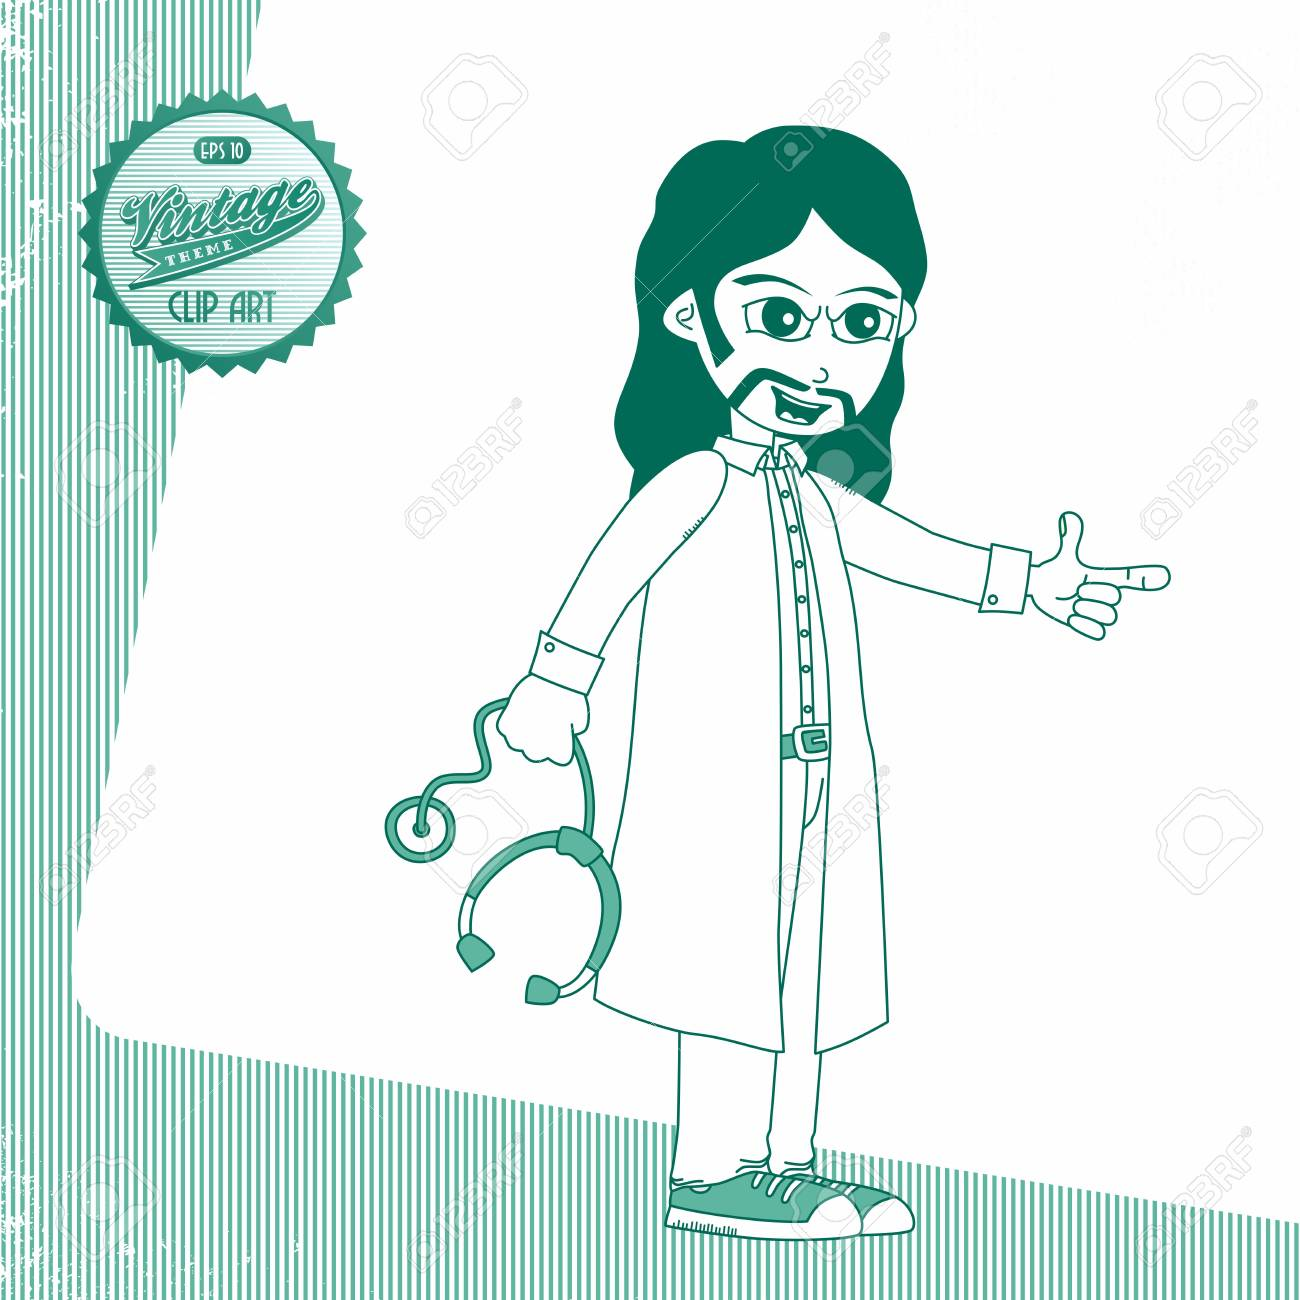 vintage page doctor rock Stock Vector - 20601043